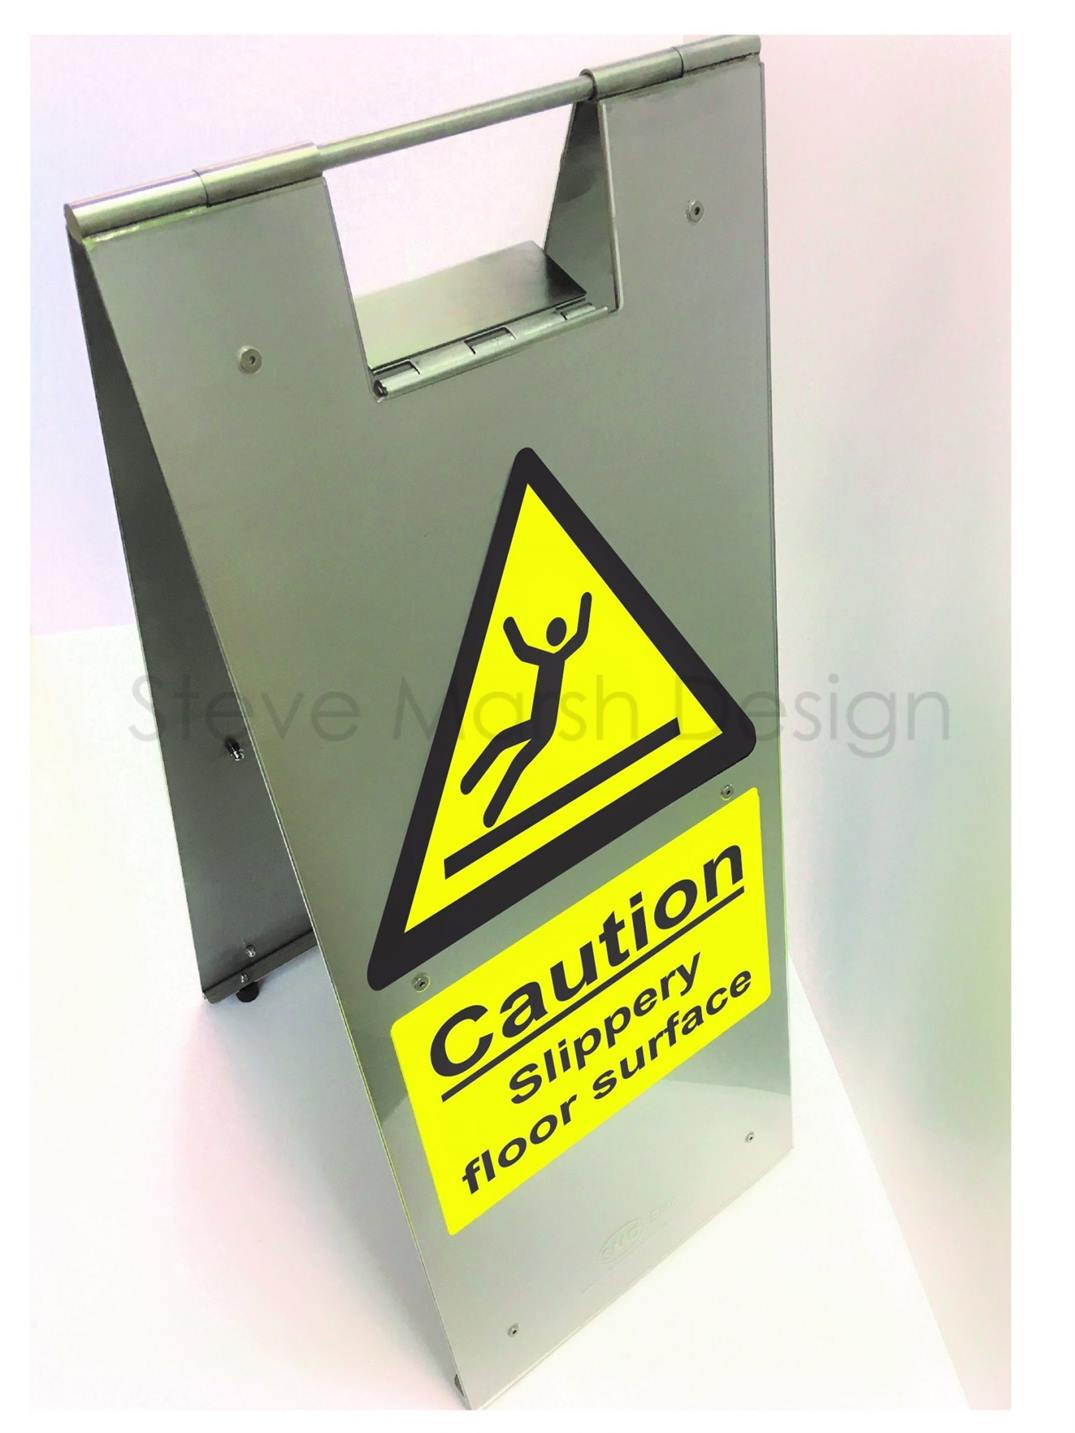 Elite wet floor stand – Caution Slippery floor surface